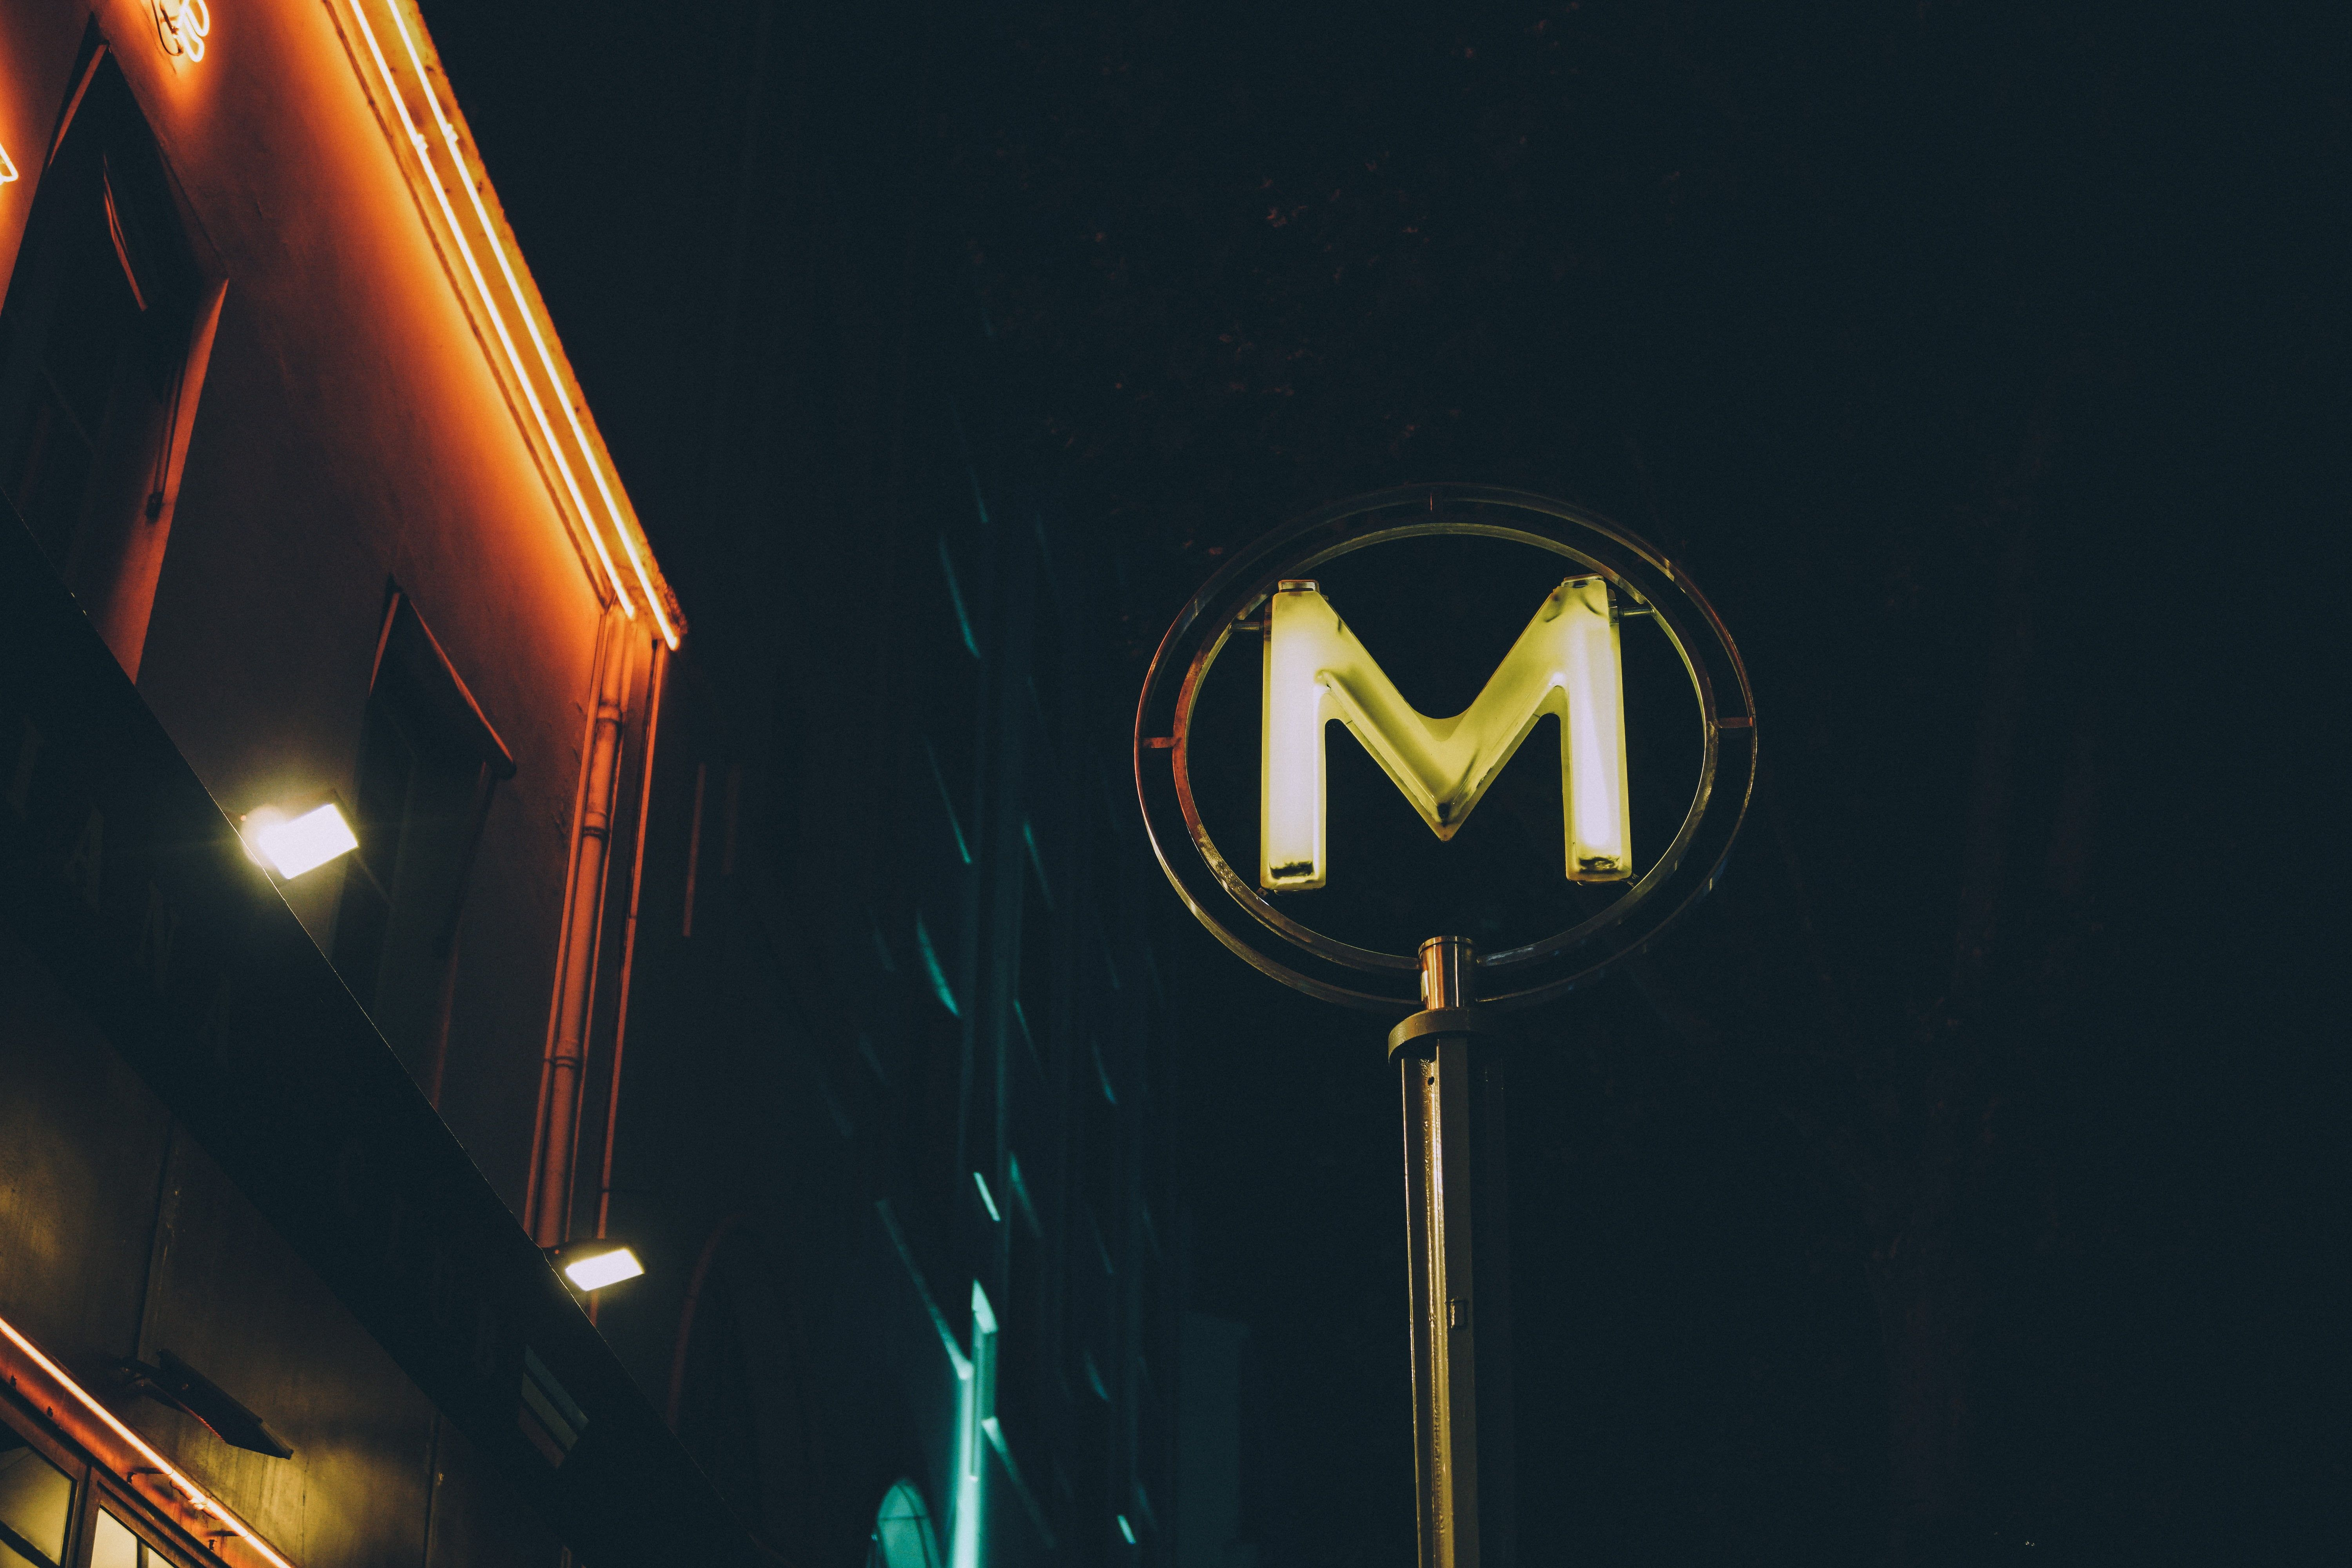 6000x4000 Yellow letter M neon signage HD wallpaper   Wallpaper Flare